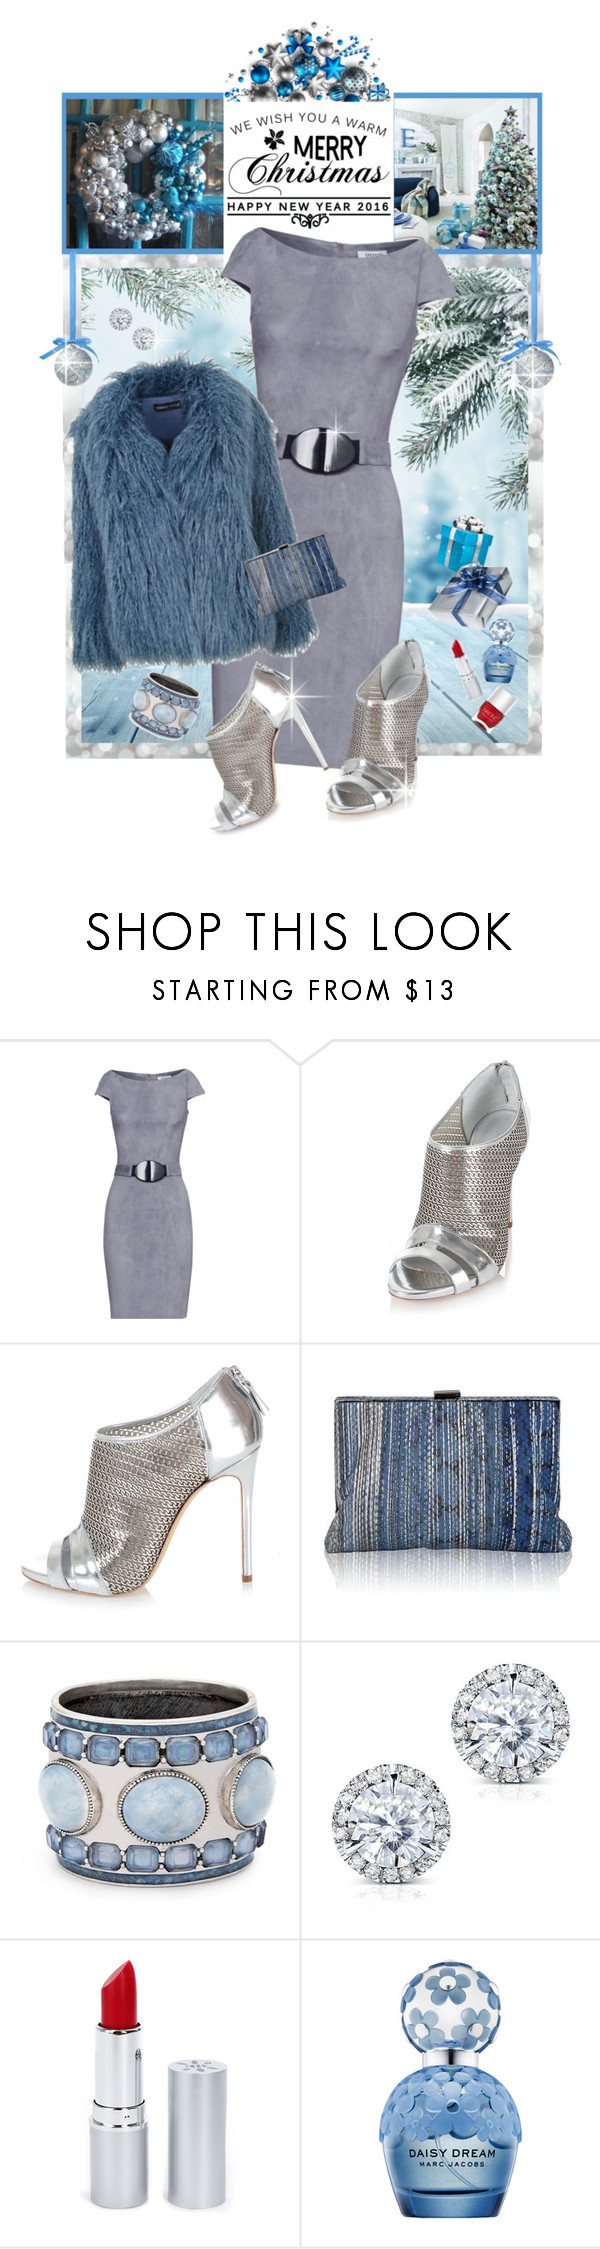 """""""Merry Christmas..Happy Holidays!!!"""" by shortyluv718 ❤ liked on Polyvore featuring Jitrois, Casadei, Topshop, Inge Christopher, Chico's, Kobelli, HoneyBee Gardens, Marc Jacobs and Nails Inc."""